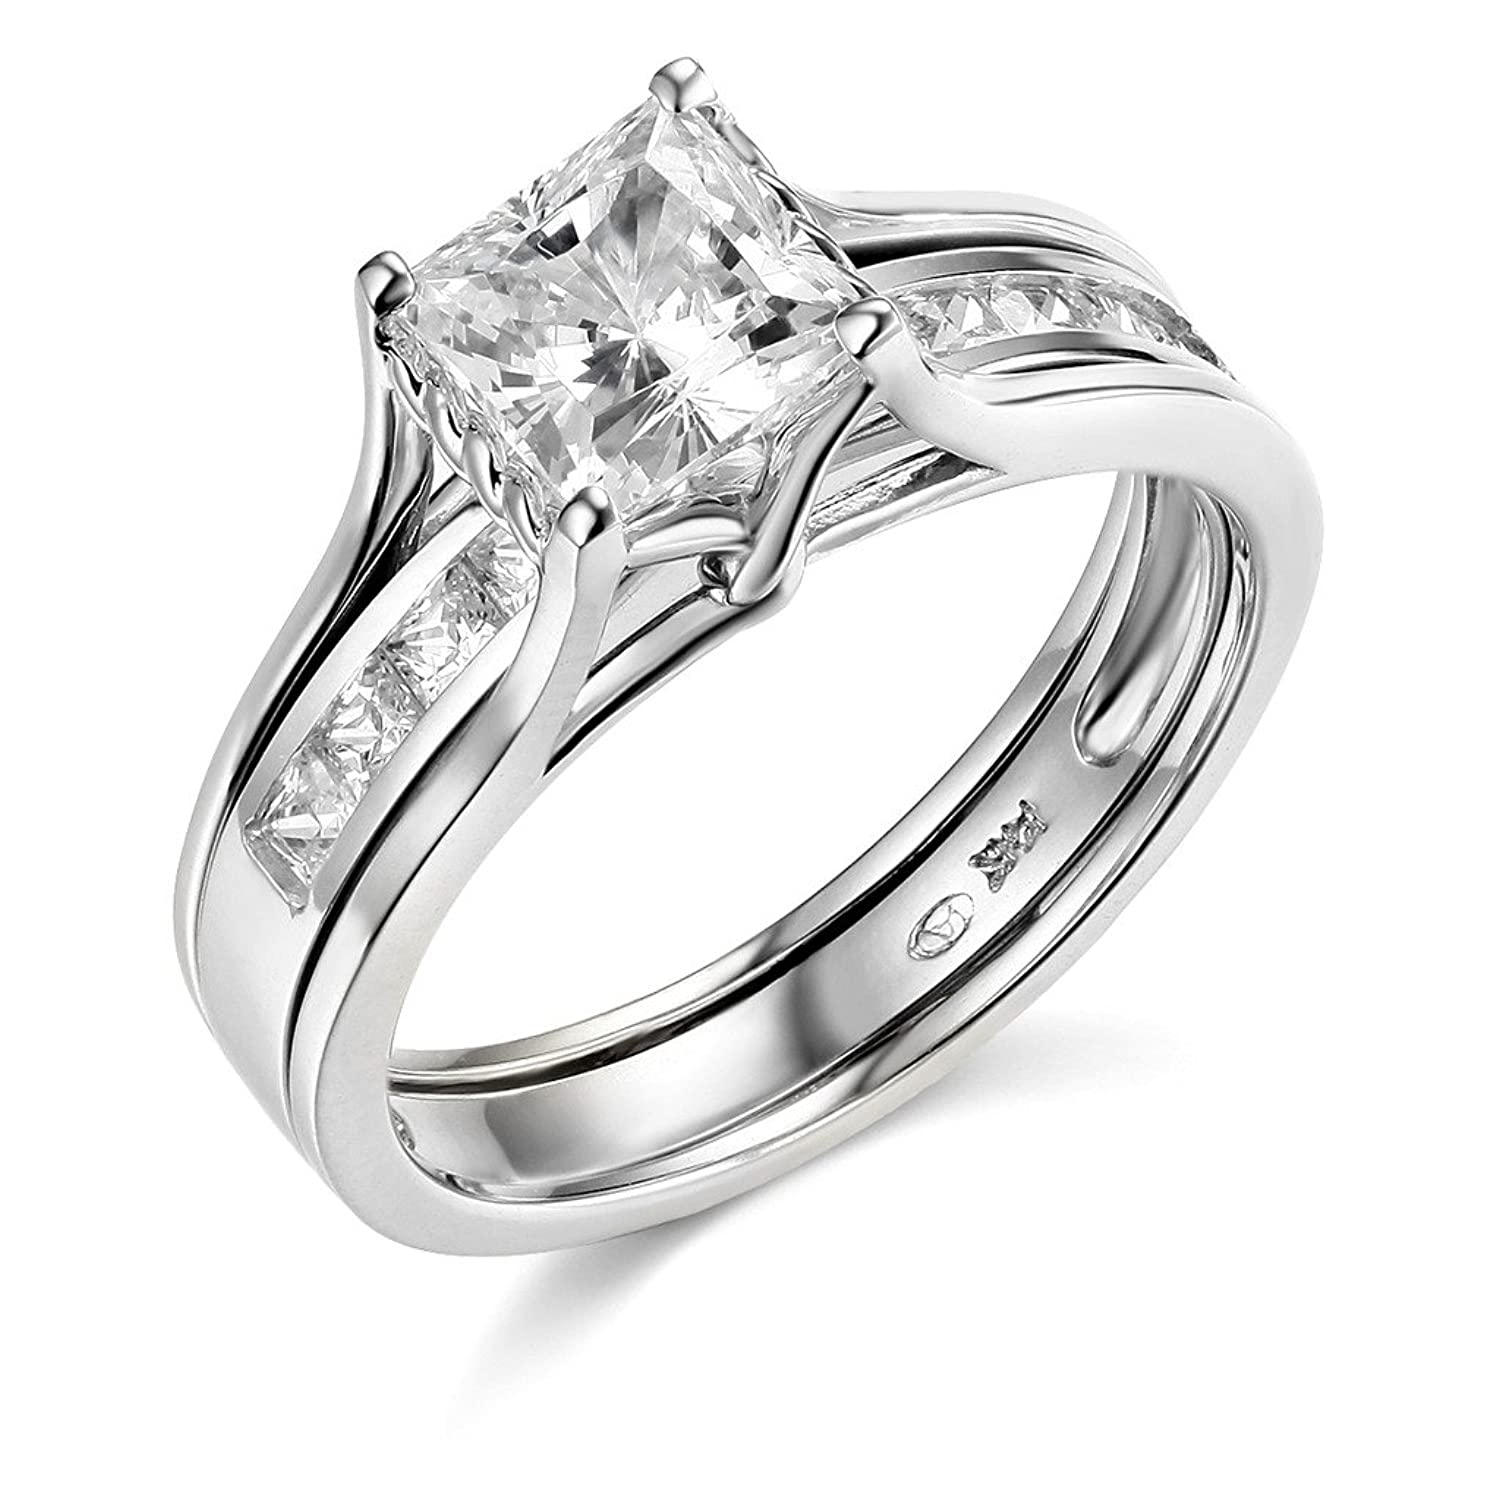 rings ring cut shop square radiant scale crop false product harmony subsampling the diamond upscale boodles engagement